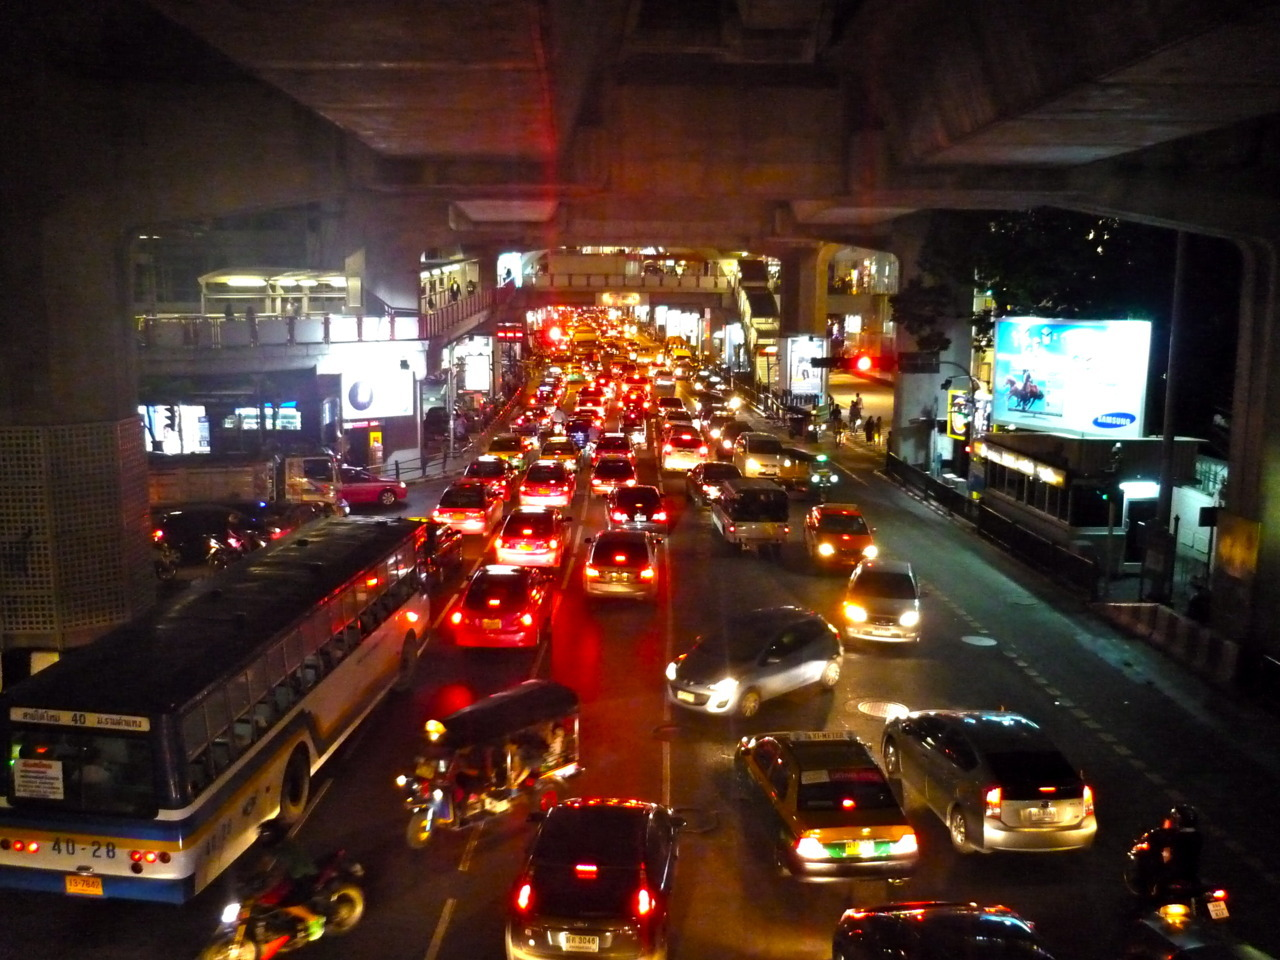 The infamous Bangkok Jam. Vehicles slither in and out, sometimes in totally opposite direction, a dangerous feat only the Thais are used to. Taxi cabs have no backseat safety belts, leaving the passengers to hope in prayers and keep awake till the time runs out and the meter runs on.